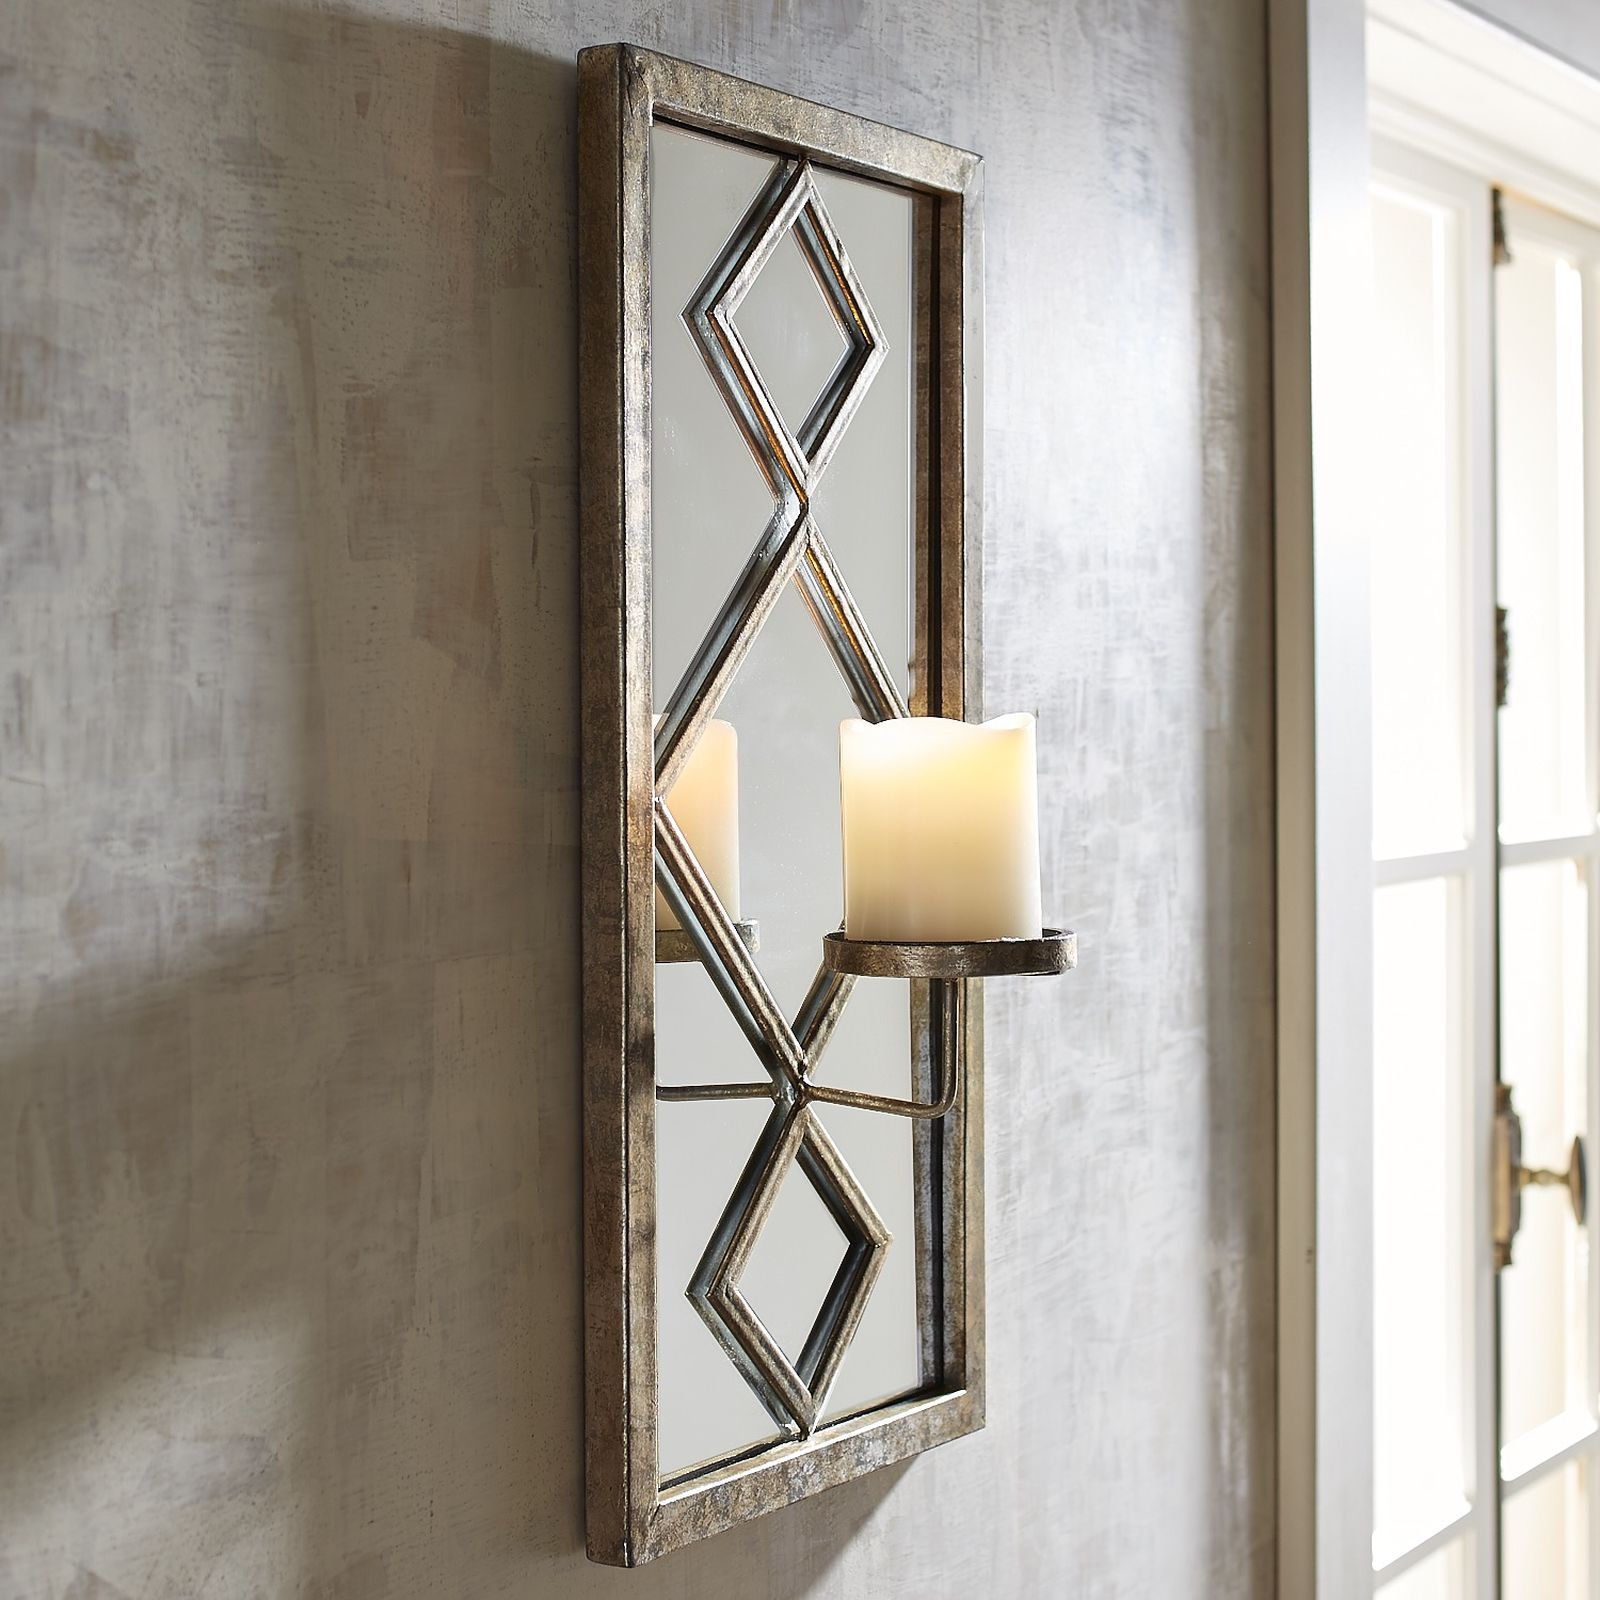 Diamond framed mirror pillar candle wall sconce flickering diamond framed mirror pillar candle wall sconce amipublicfo Images